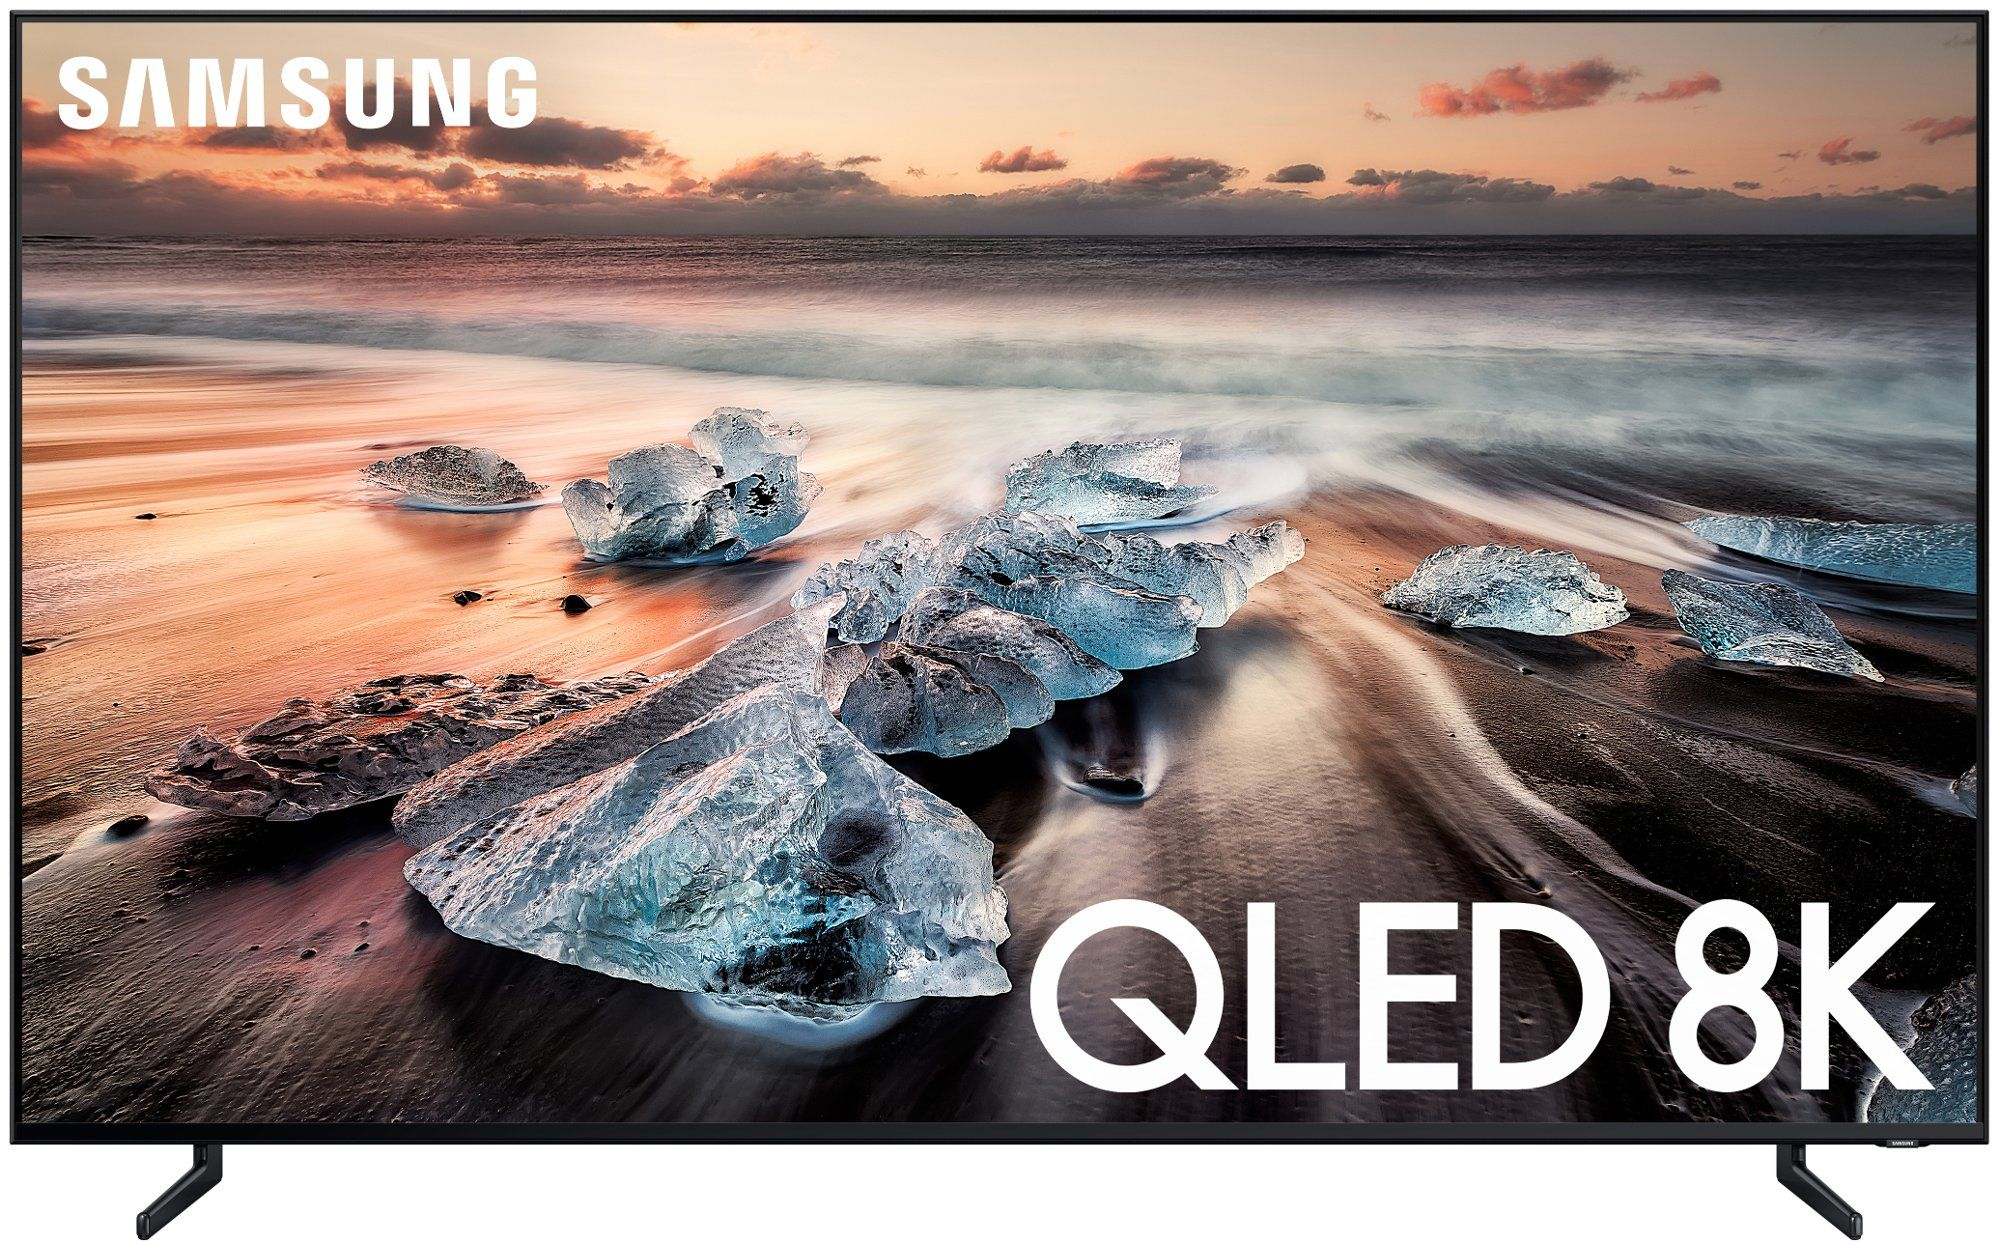 This incredibly massive Samsung QN82Q900R 82 Inch QLED 8K UHD Q900 Series Smart TV from RC Willey brings true-to-life picture quality with a redefinition of high definition. Samsung's best TV ever combines true-to-life 8K HDR picture quality, AI-powered intelligent upscaling, stunning design, and smart home ready features, for a revolutionary TV experience. Astounding Clarity Concentrated zones of precision-controlled LEDs display ultra-deep blacks and pure whites with Direct Full Array 16x. Ent